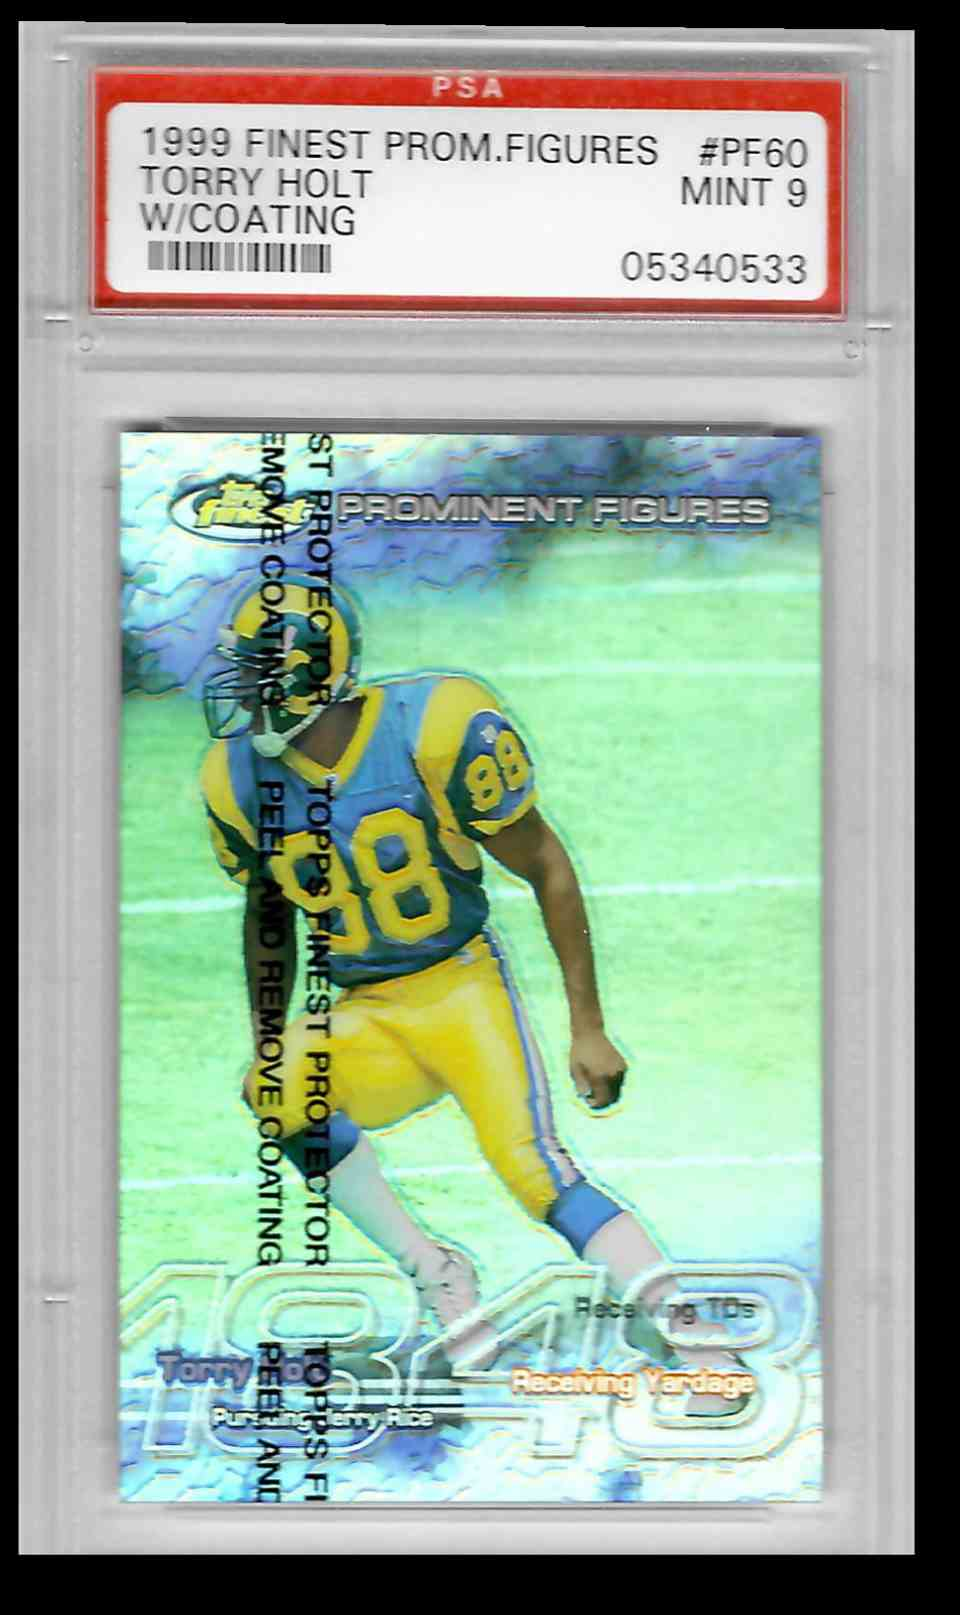 1999 Topps Finest Torry Holt #PF60 card front image